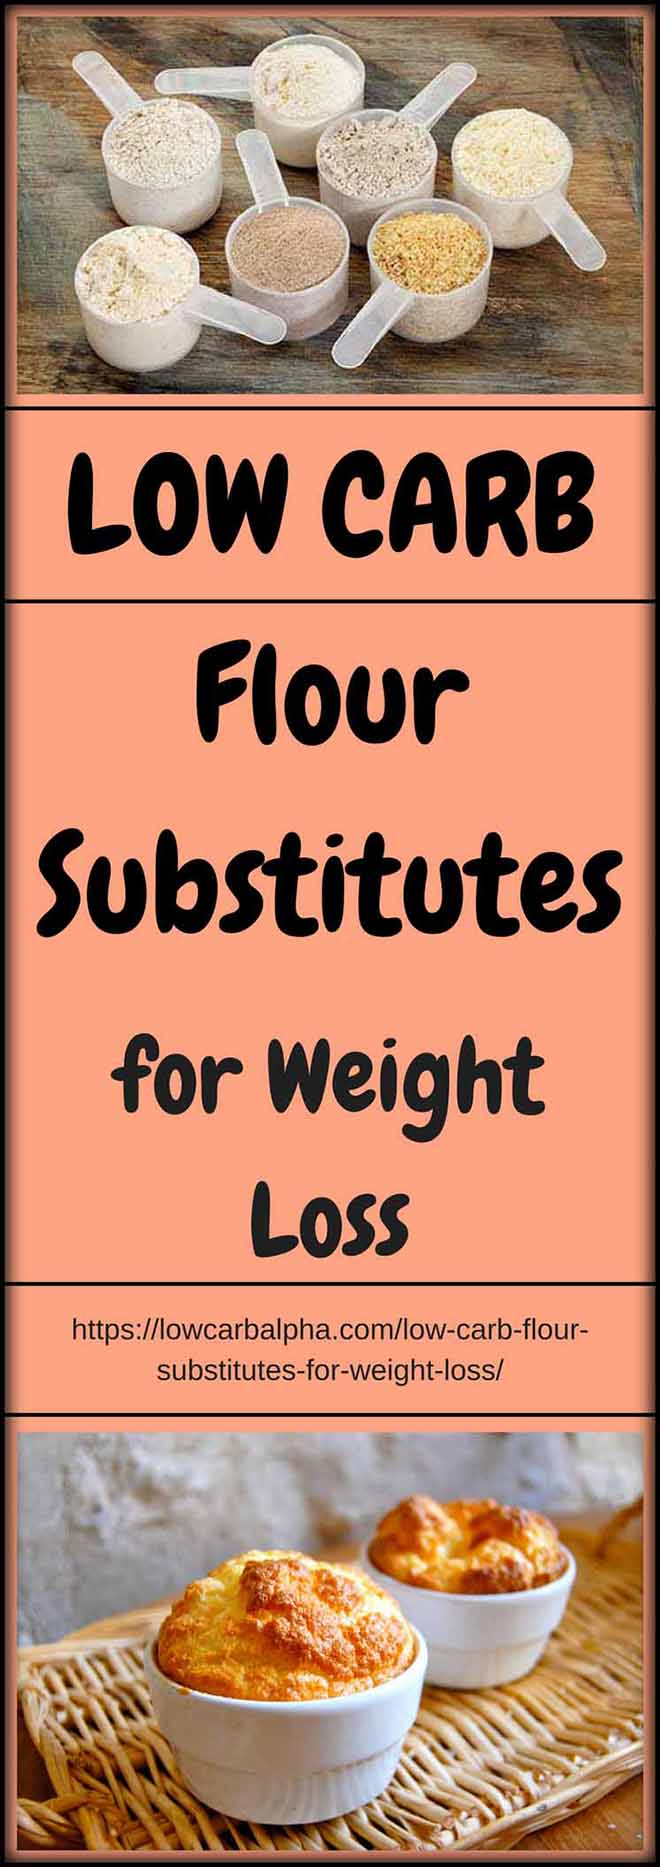 Low Carb Flour Substitutes for Weight Loss